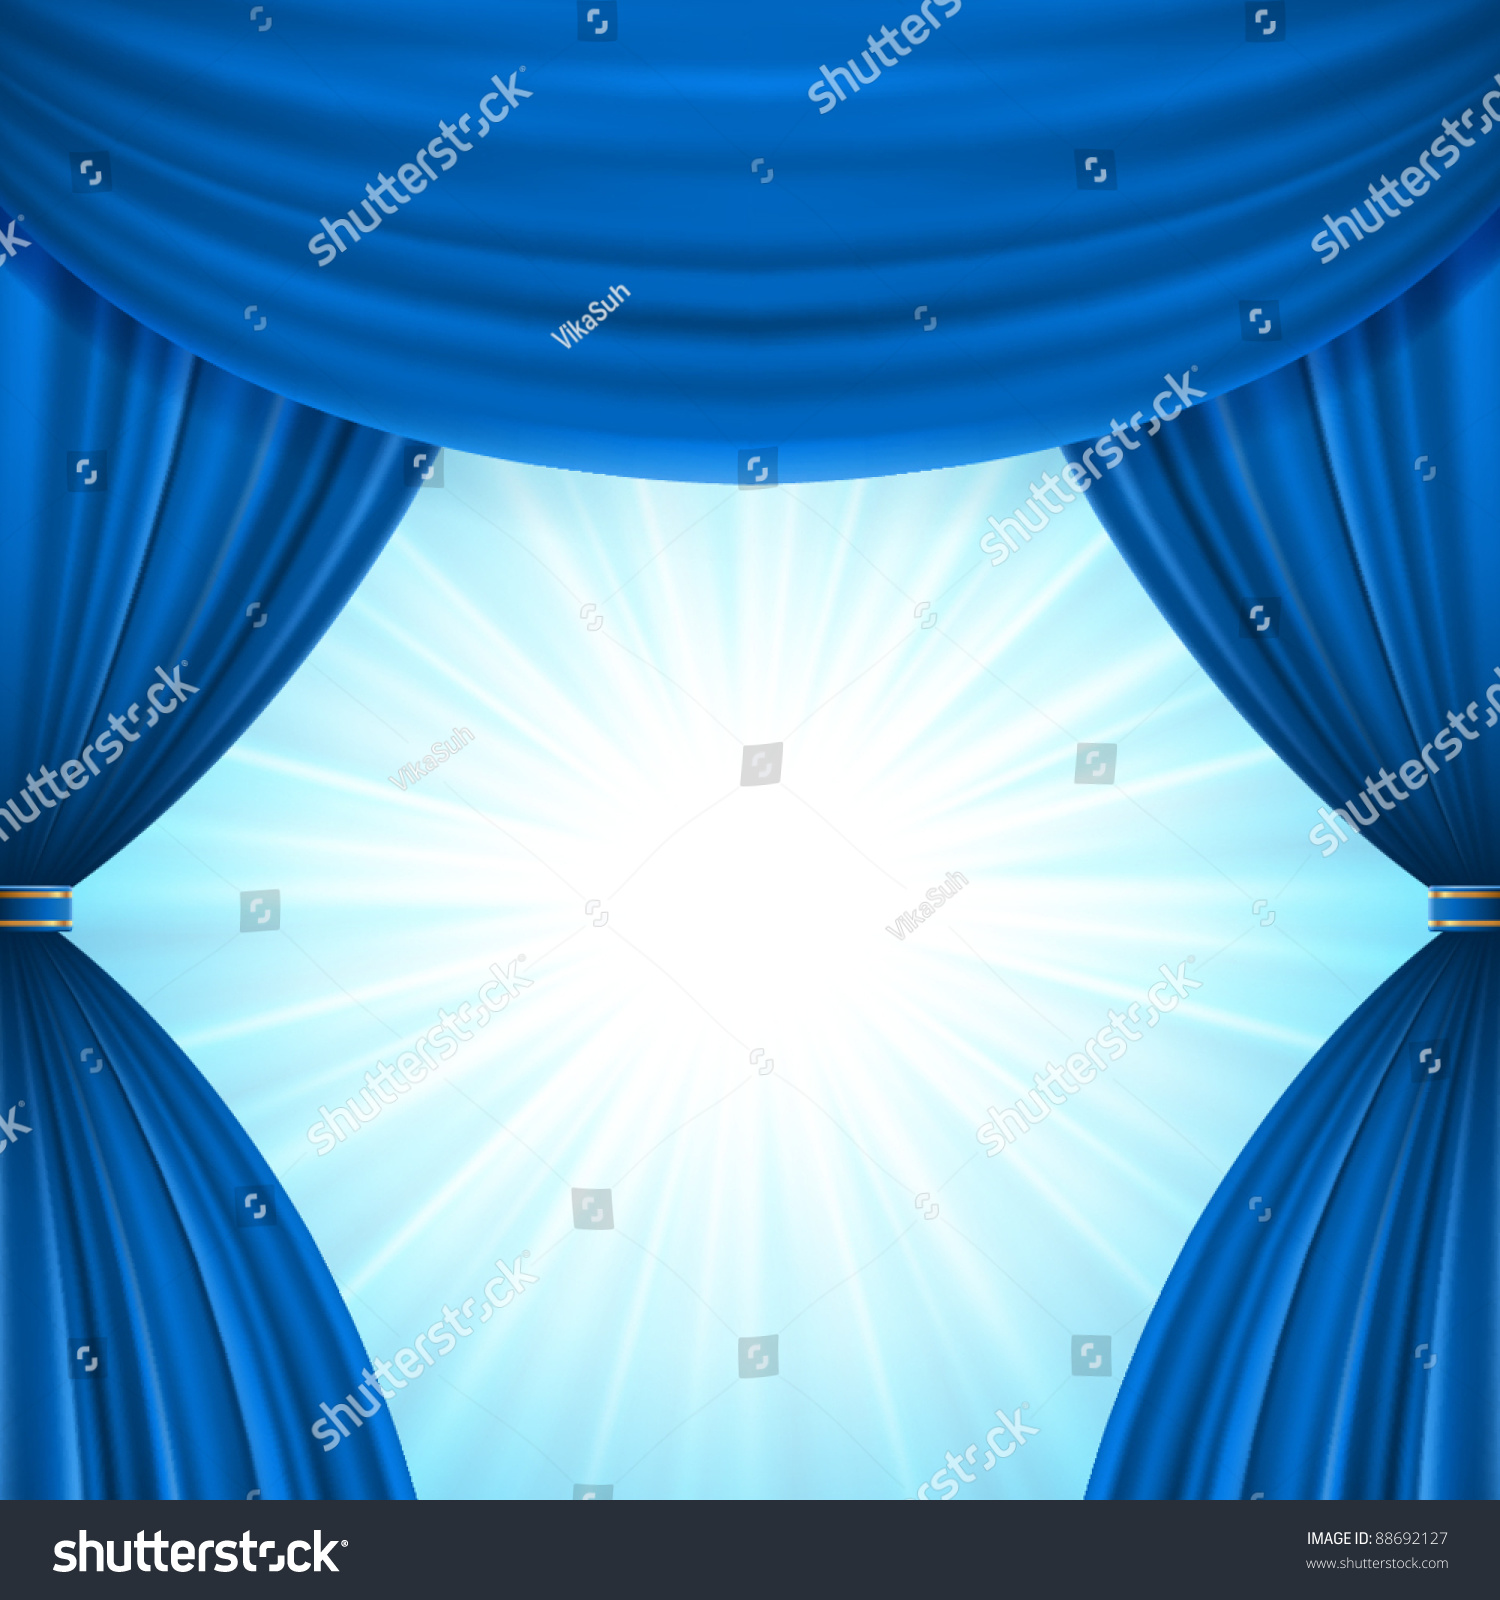 Blue curtain backdrop - Blue Stage Curtain Background Blue Theater Curtain And Light Celebration Vector Background Eps 10